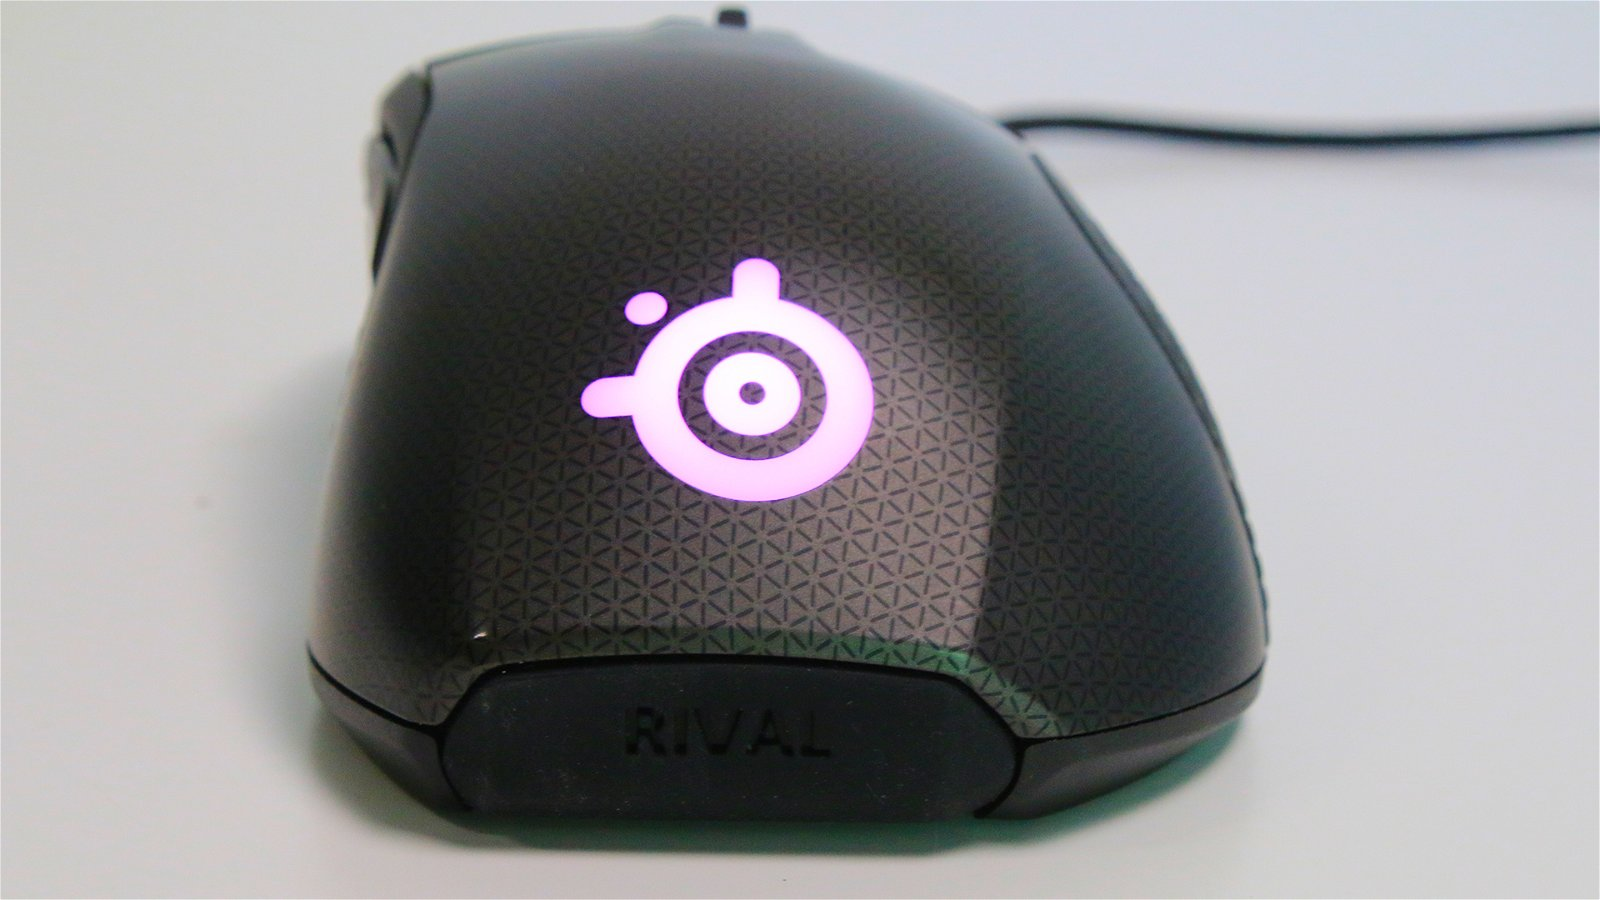 Steelseries Rival 700 Mouse (Hardware) Review 12